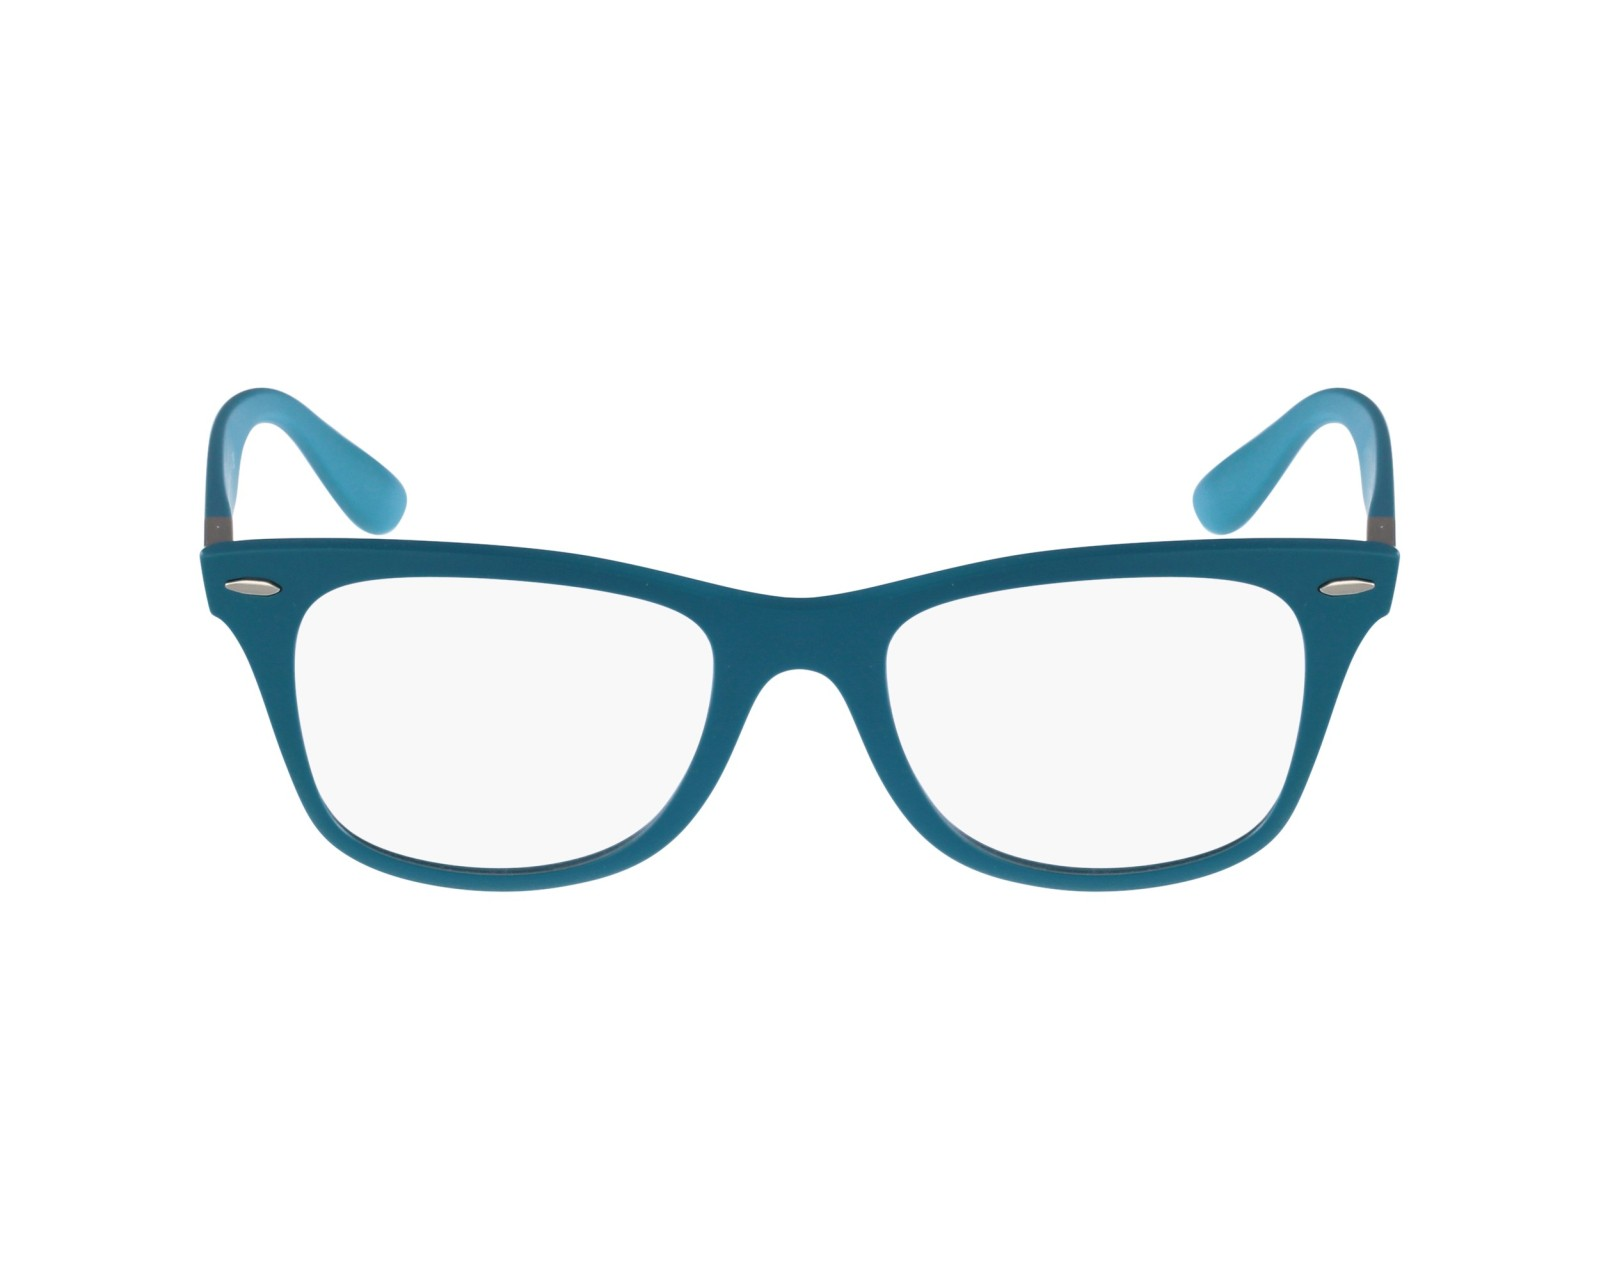 2f1f5d631a5 ... new zealand eyeglasses ray ban rx 7034 5442 50 19 turquoise profile  view 84698 413c8